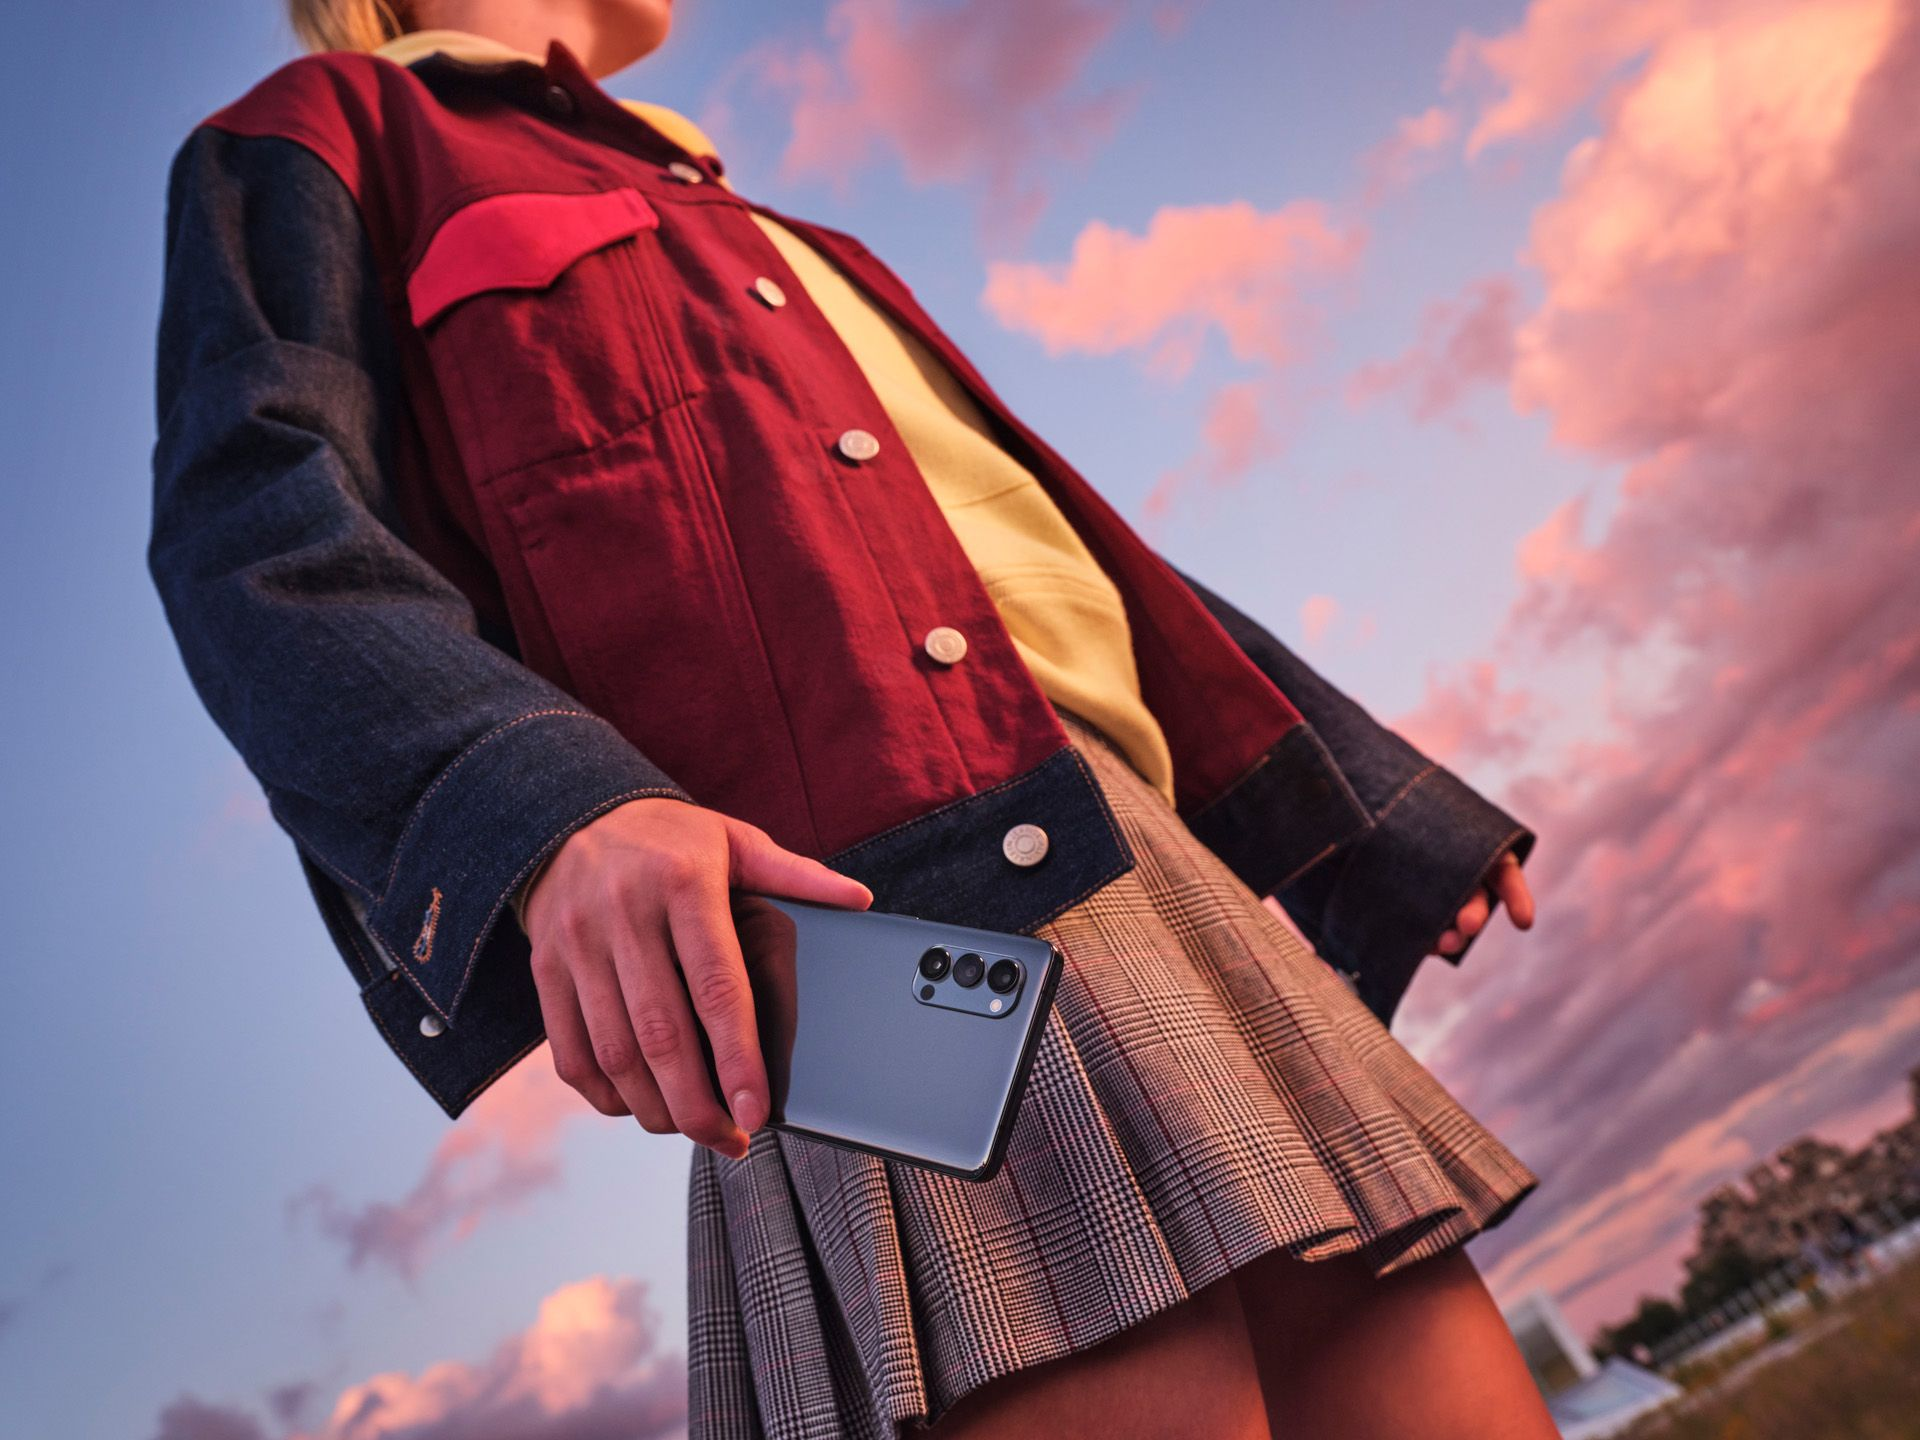 girl wearing a skirt with a oppo in the hands during sunset hour